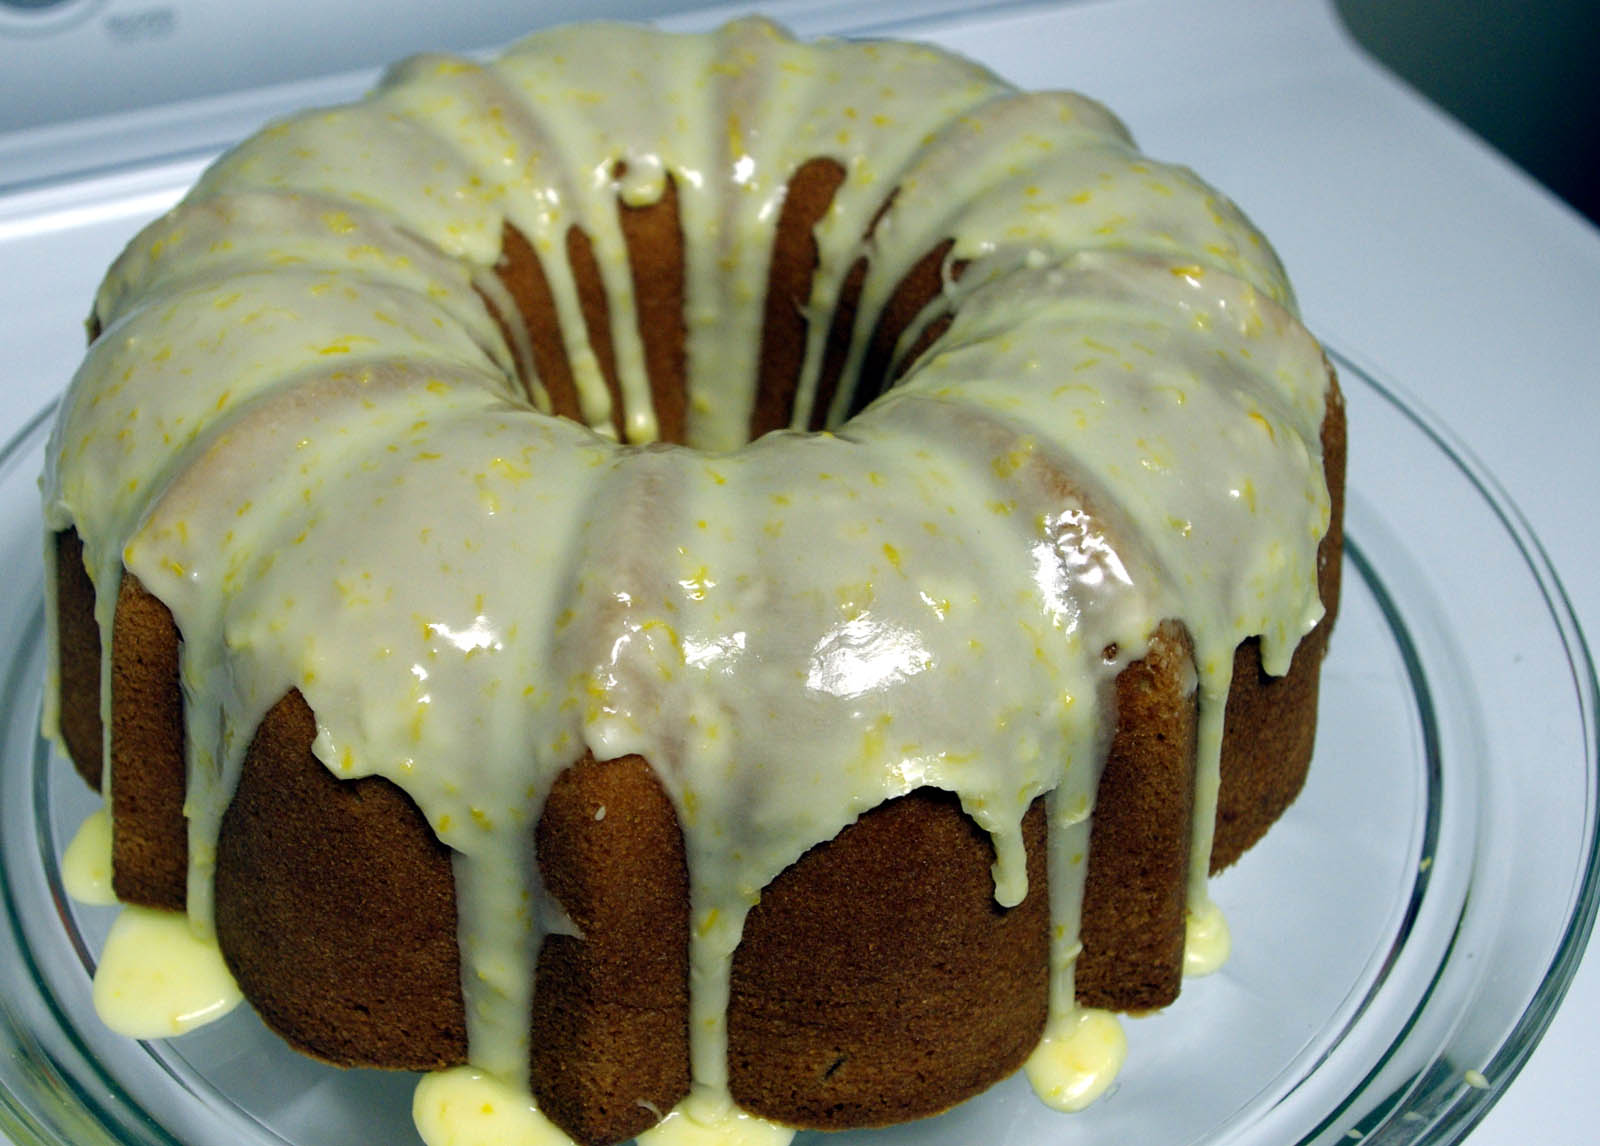 Glazed Lemon-and-Orange Pound Cake